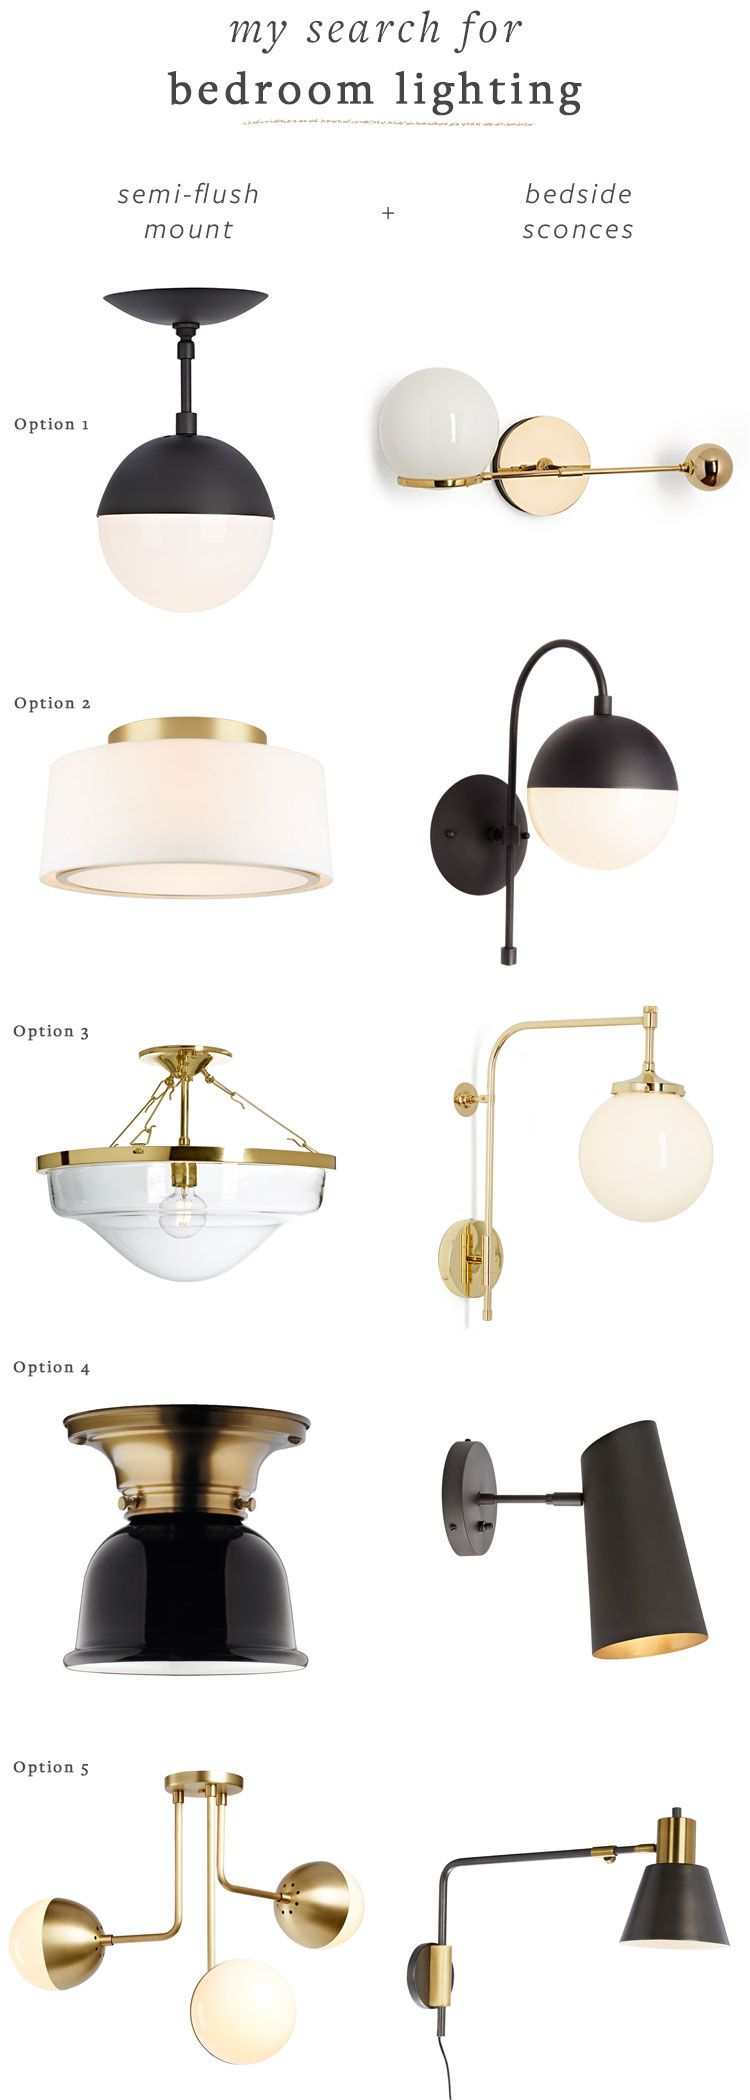 Matte Black And Brass Bedroom Lighting Fixtures Round Up Flush Mount Semi Flush Mount And B Bedroom Light Fixtures Black Light Fixture Bedroom Ceiling Light